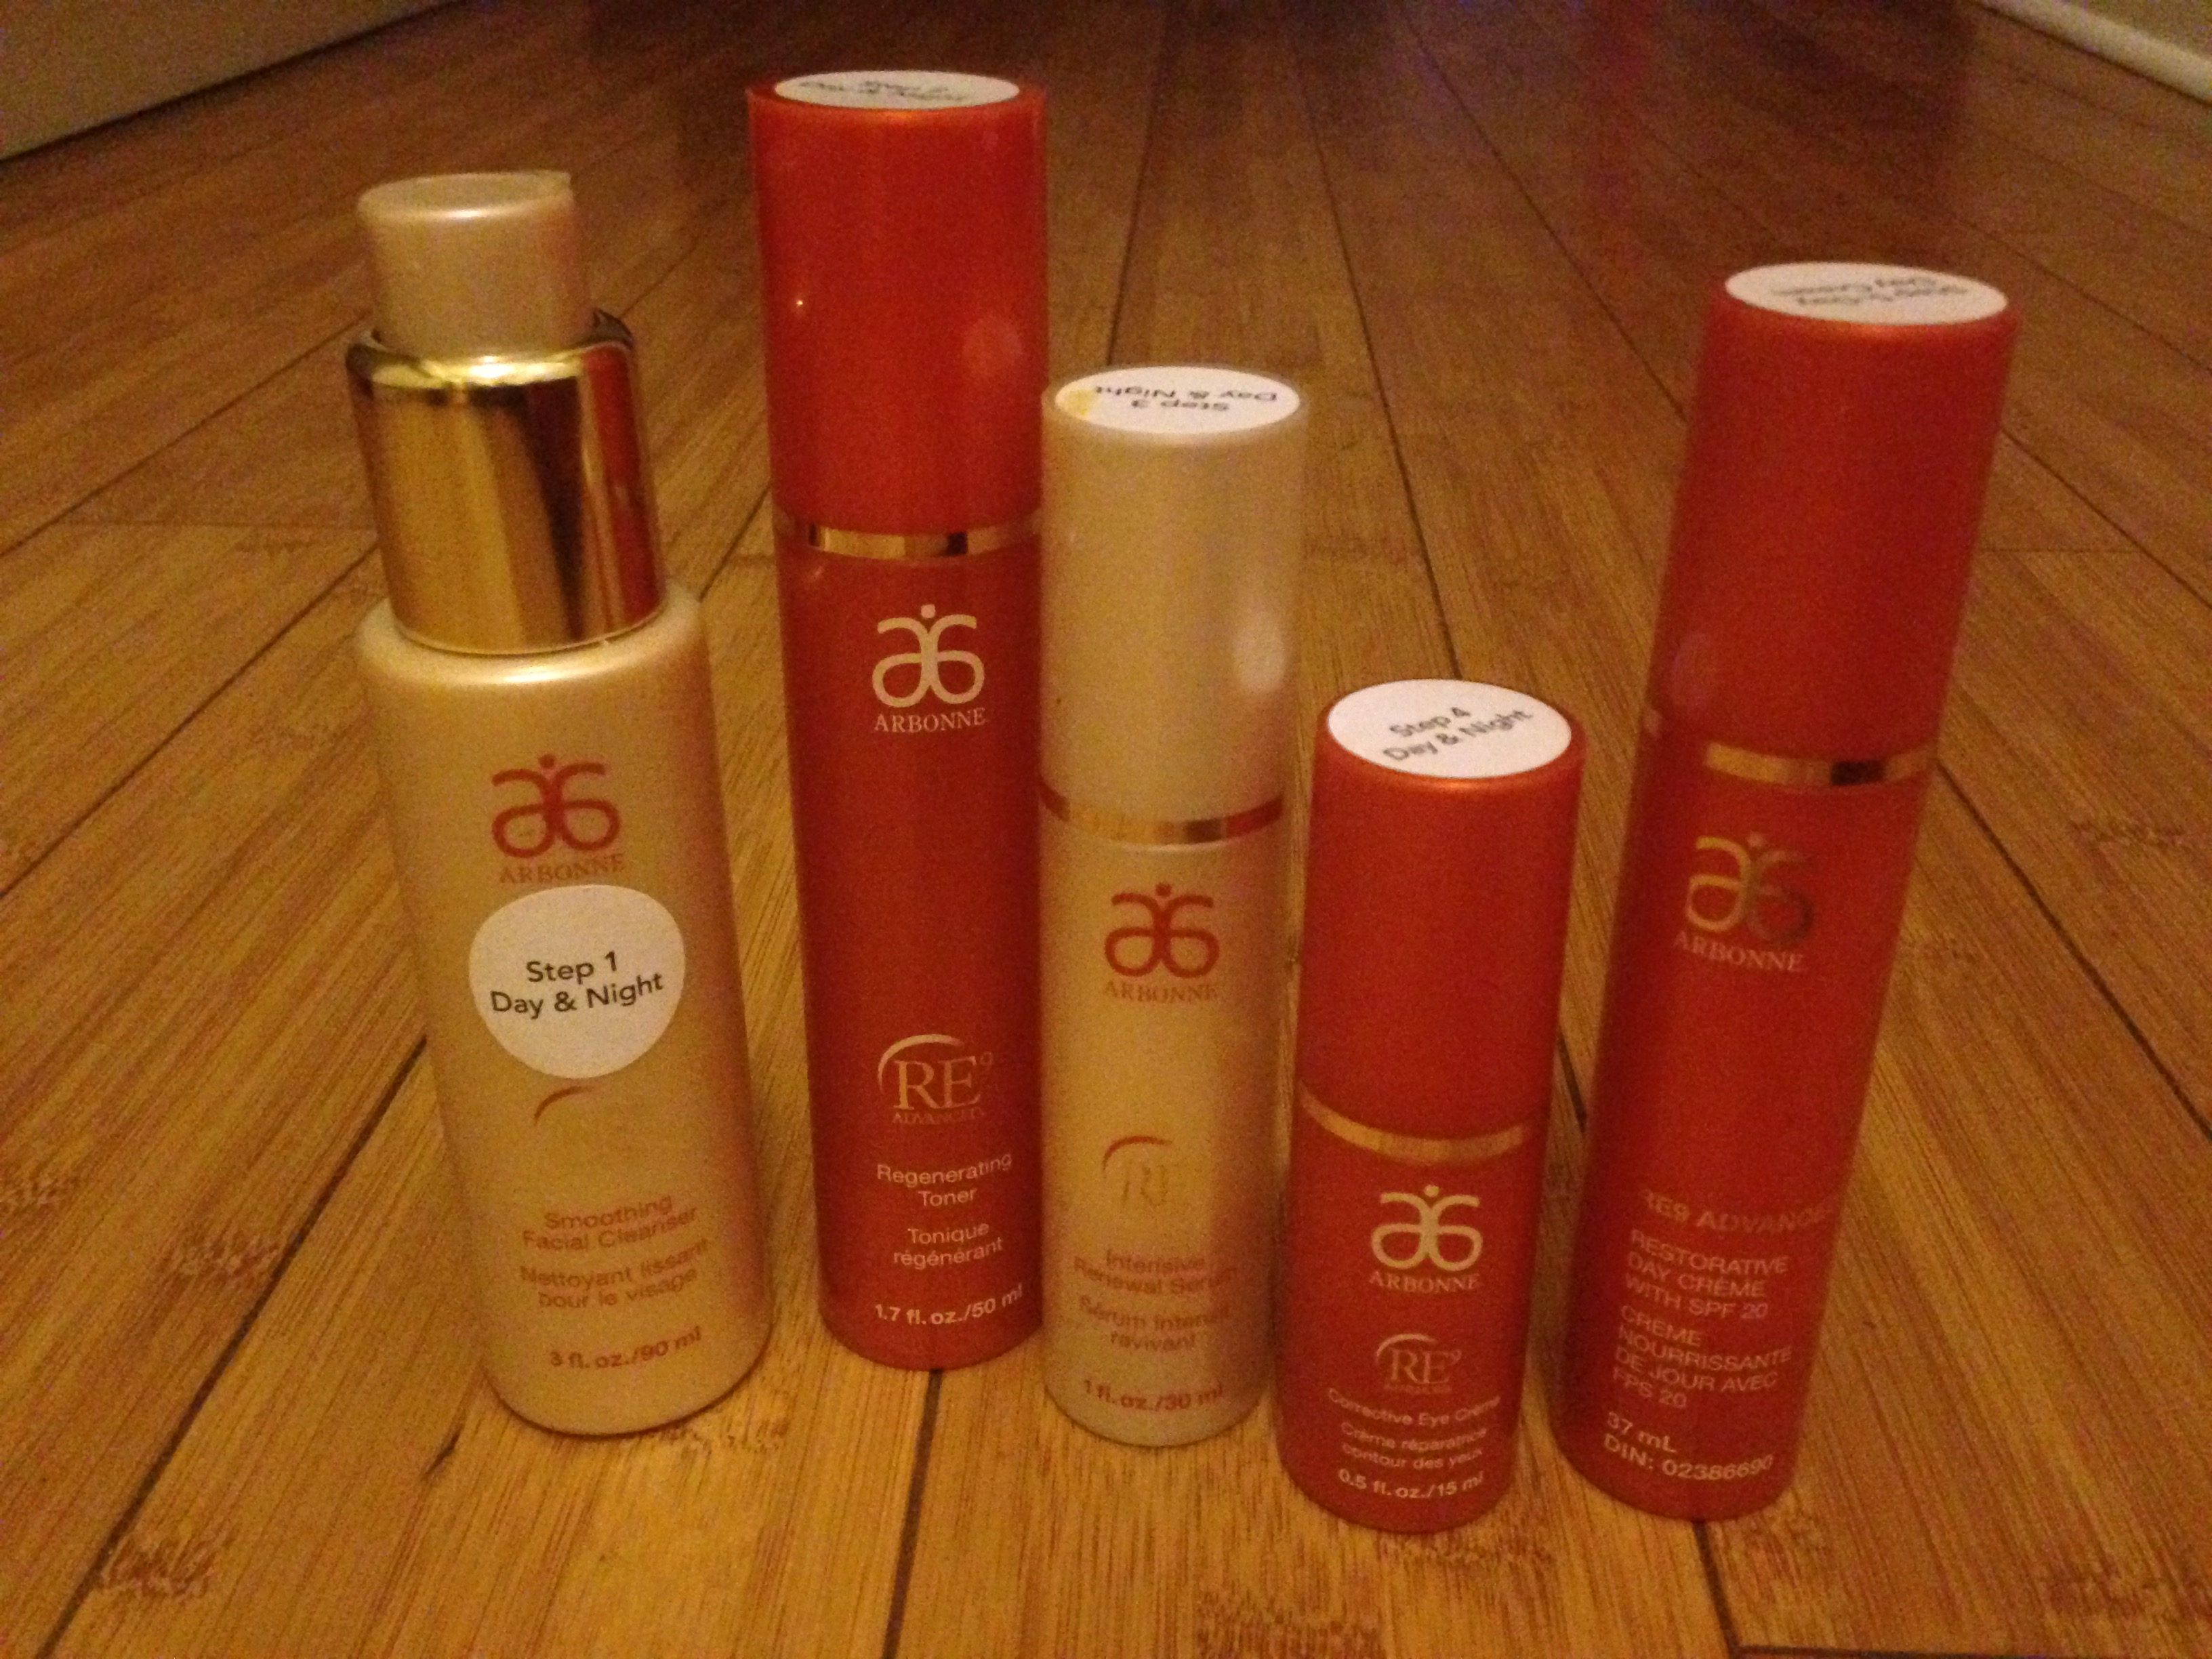 Vegan product review: Arbonne skin care system